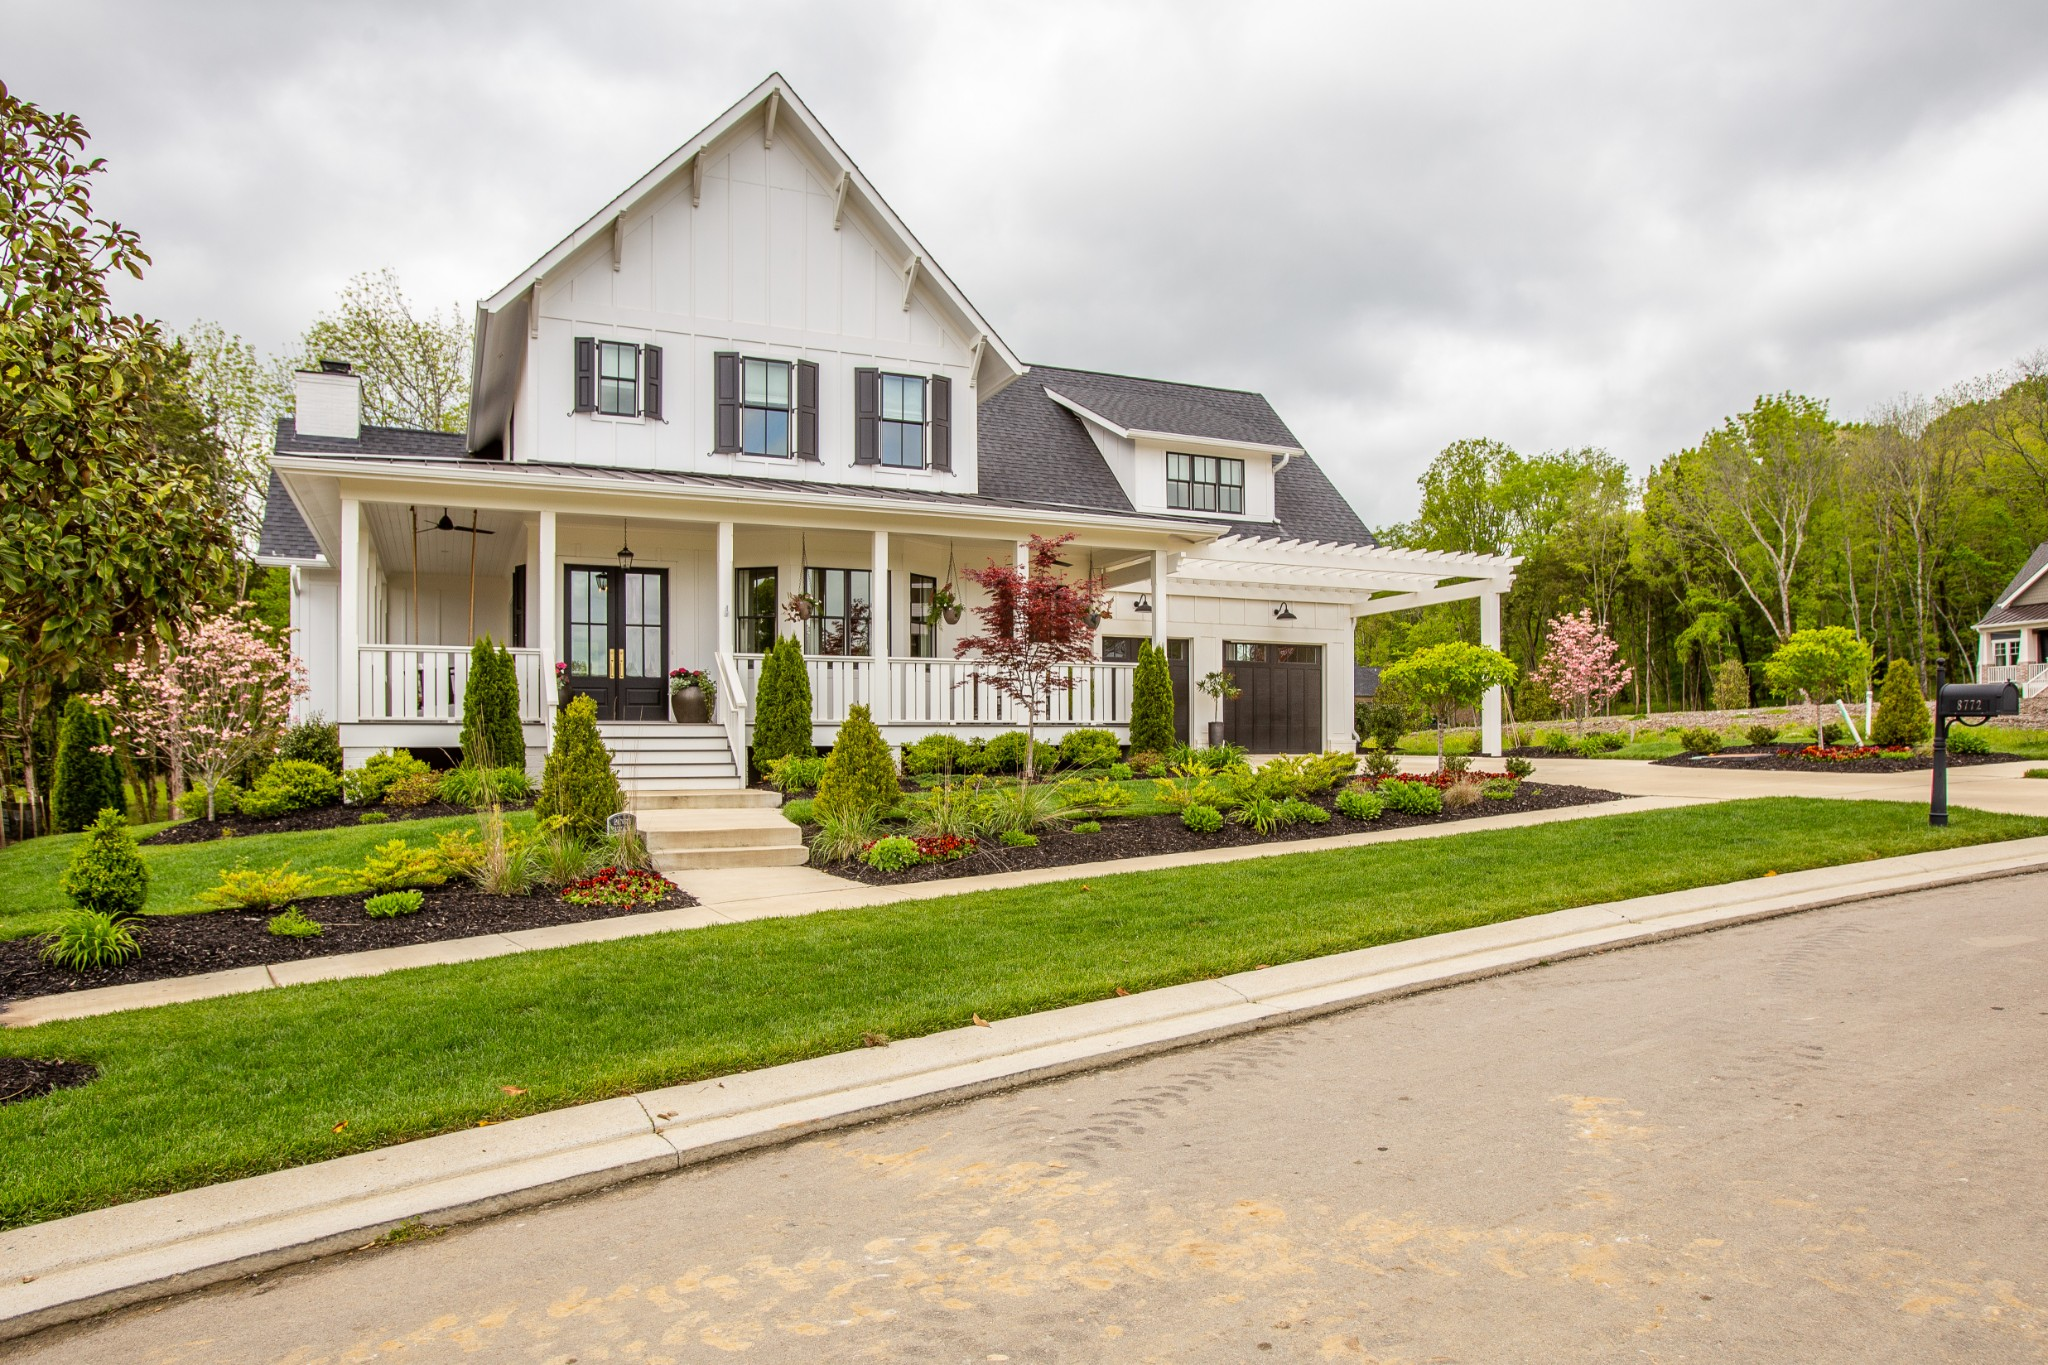 8772 Belladonna Dr Property Photo - College Grove, TN real estate listing